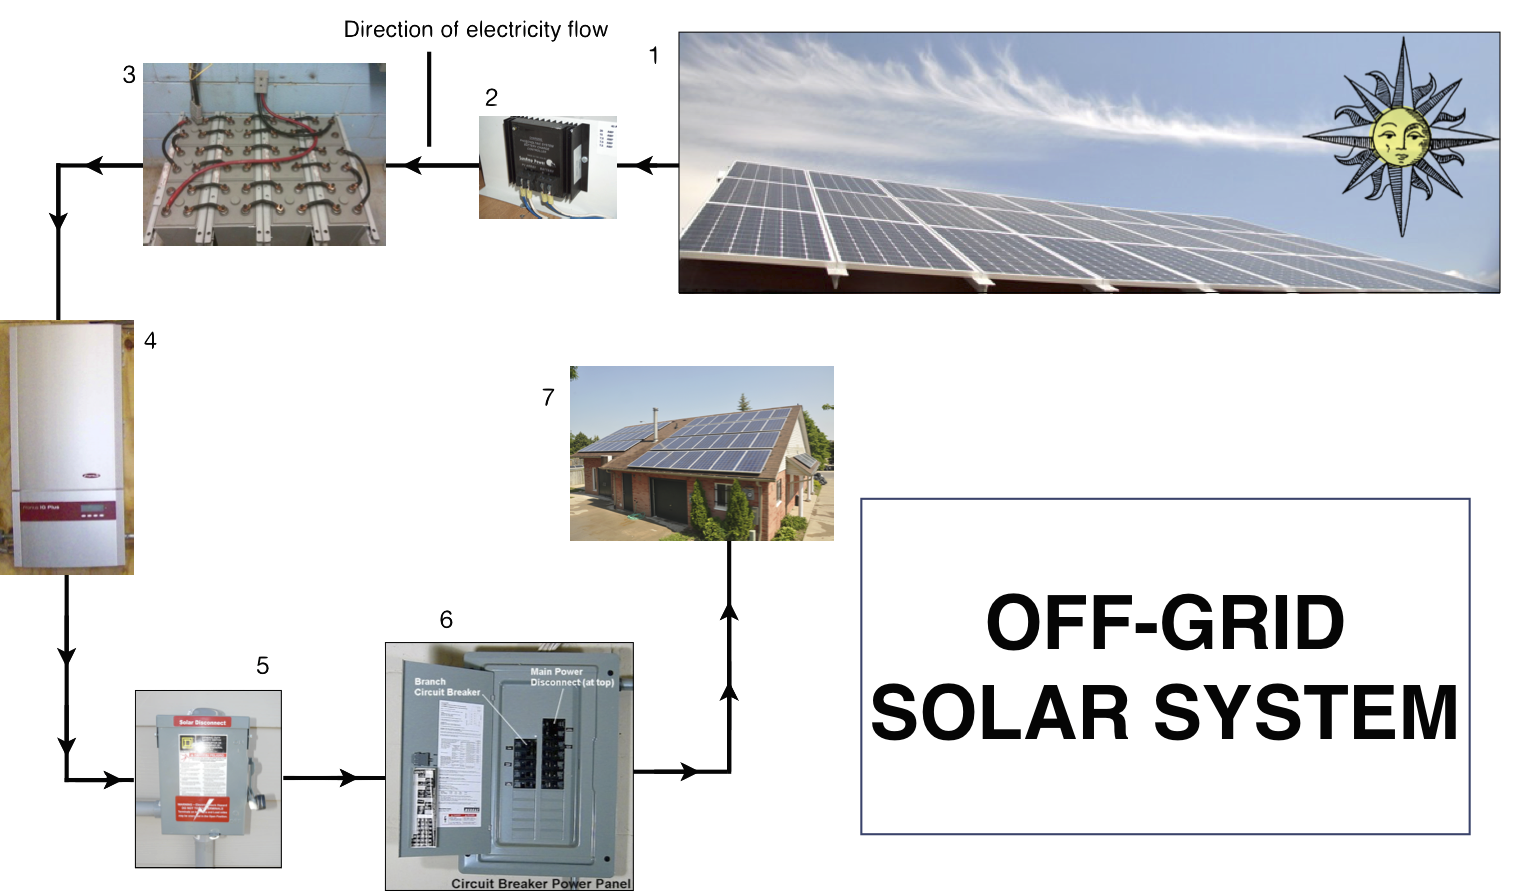 30kw Solar System Off Grid Wiring Diagram Manual E Books Diagram30kw